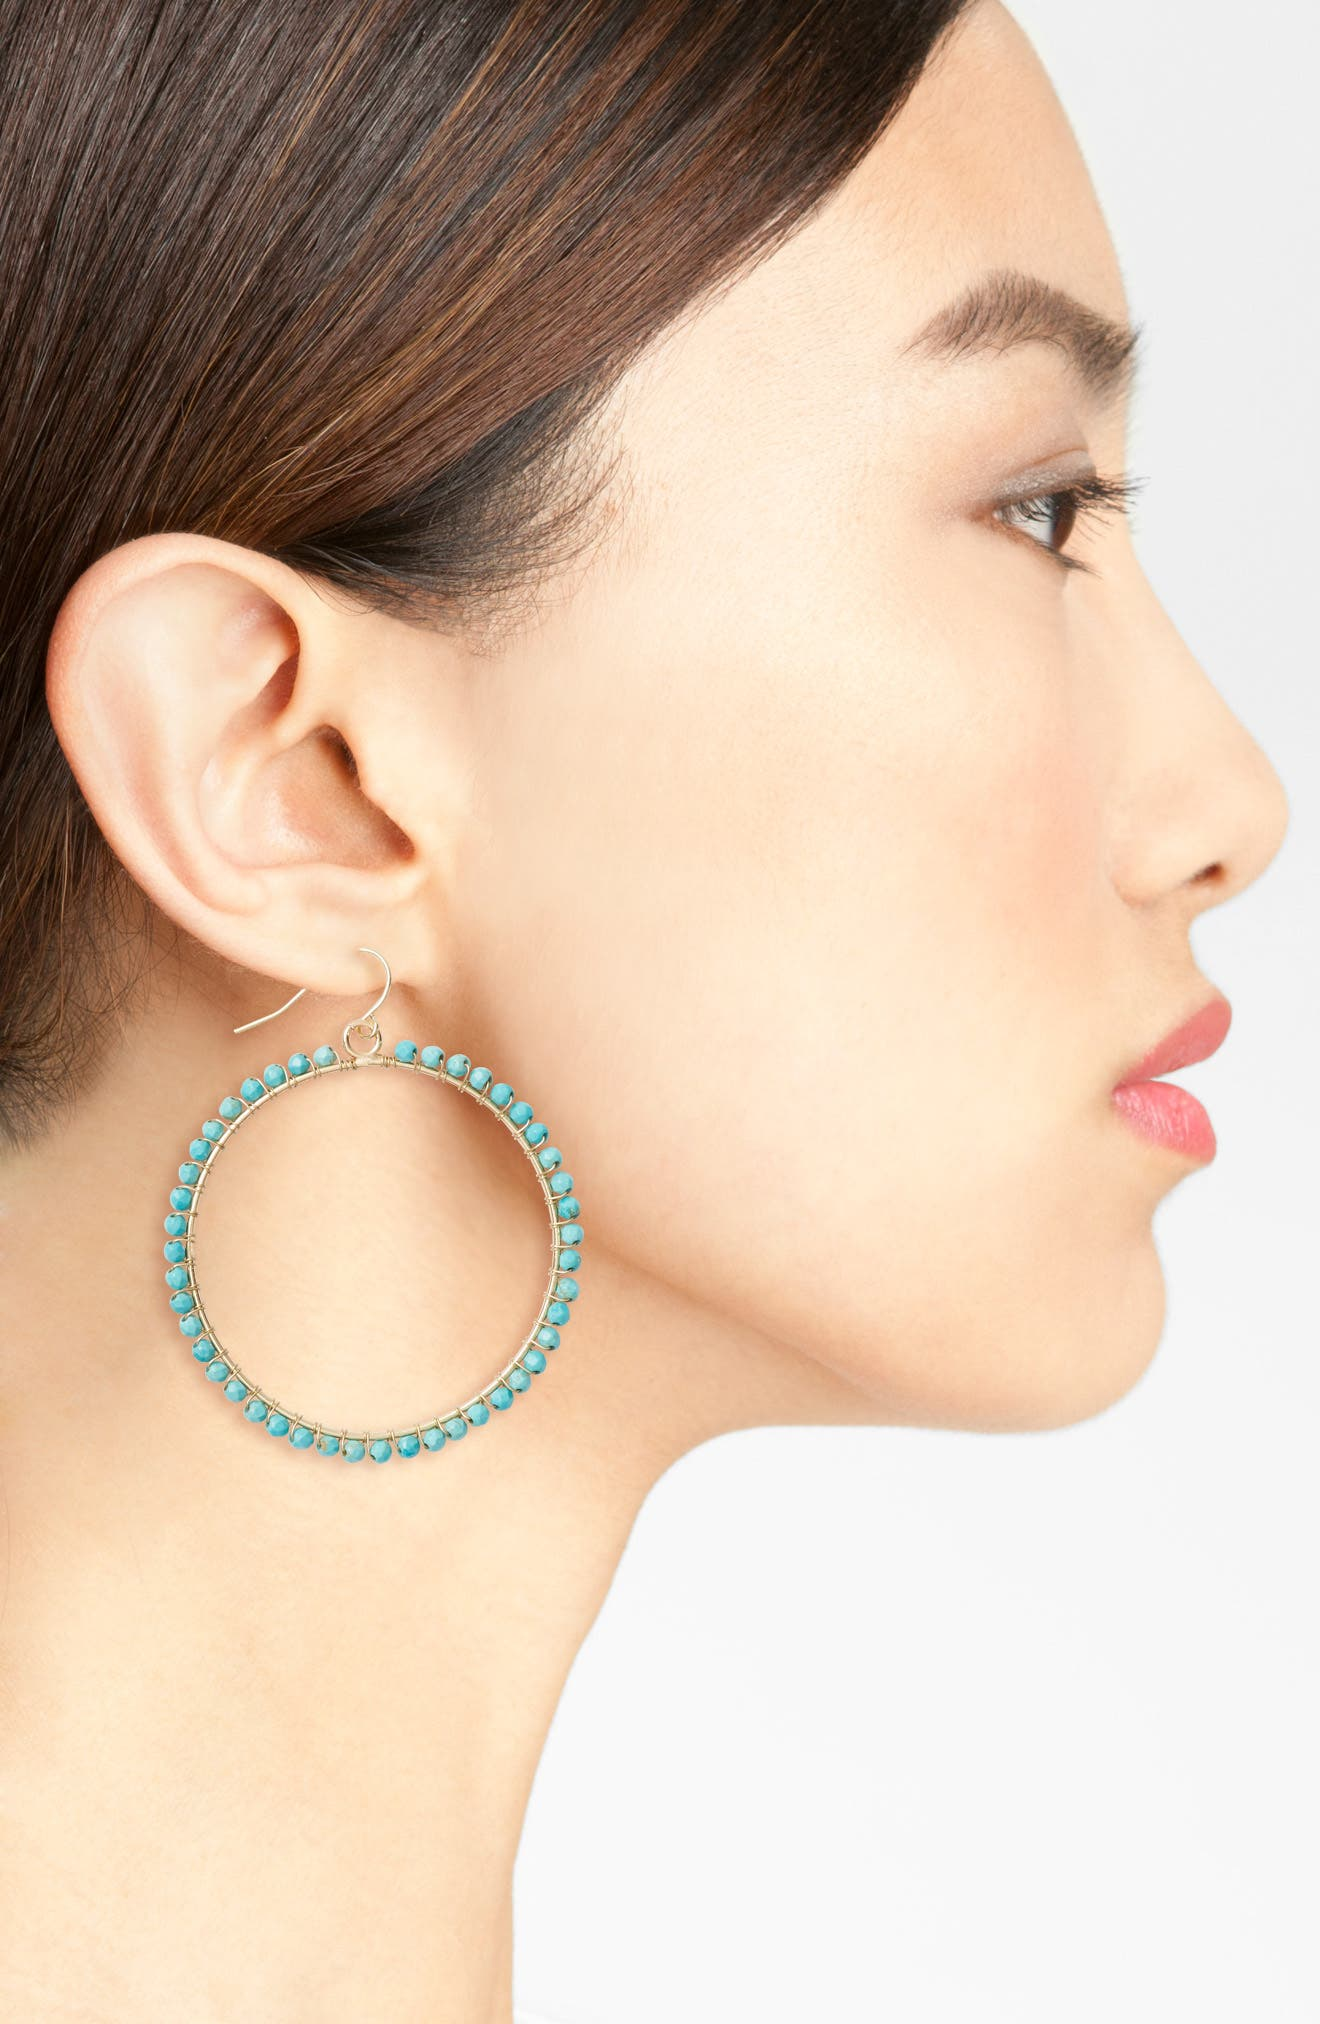 Wrapped Hoop Earrings,                             Alternate thumbnail 2, color,                             TURQUOISE